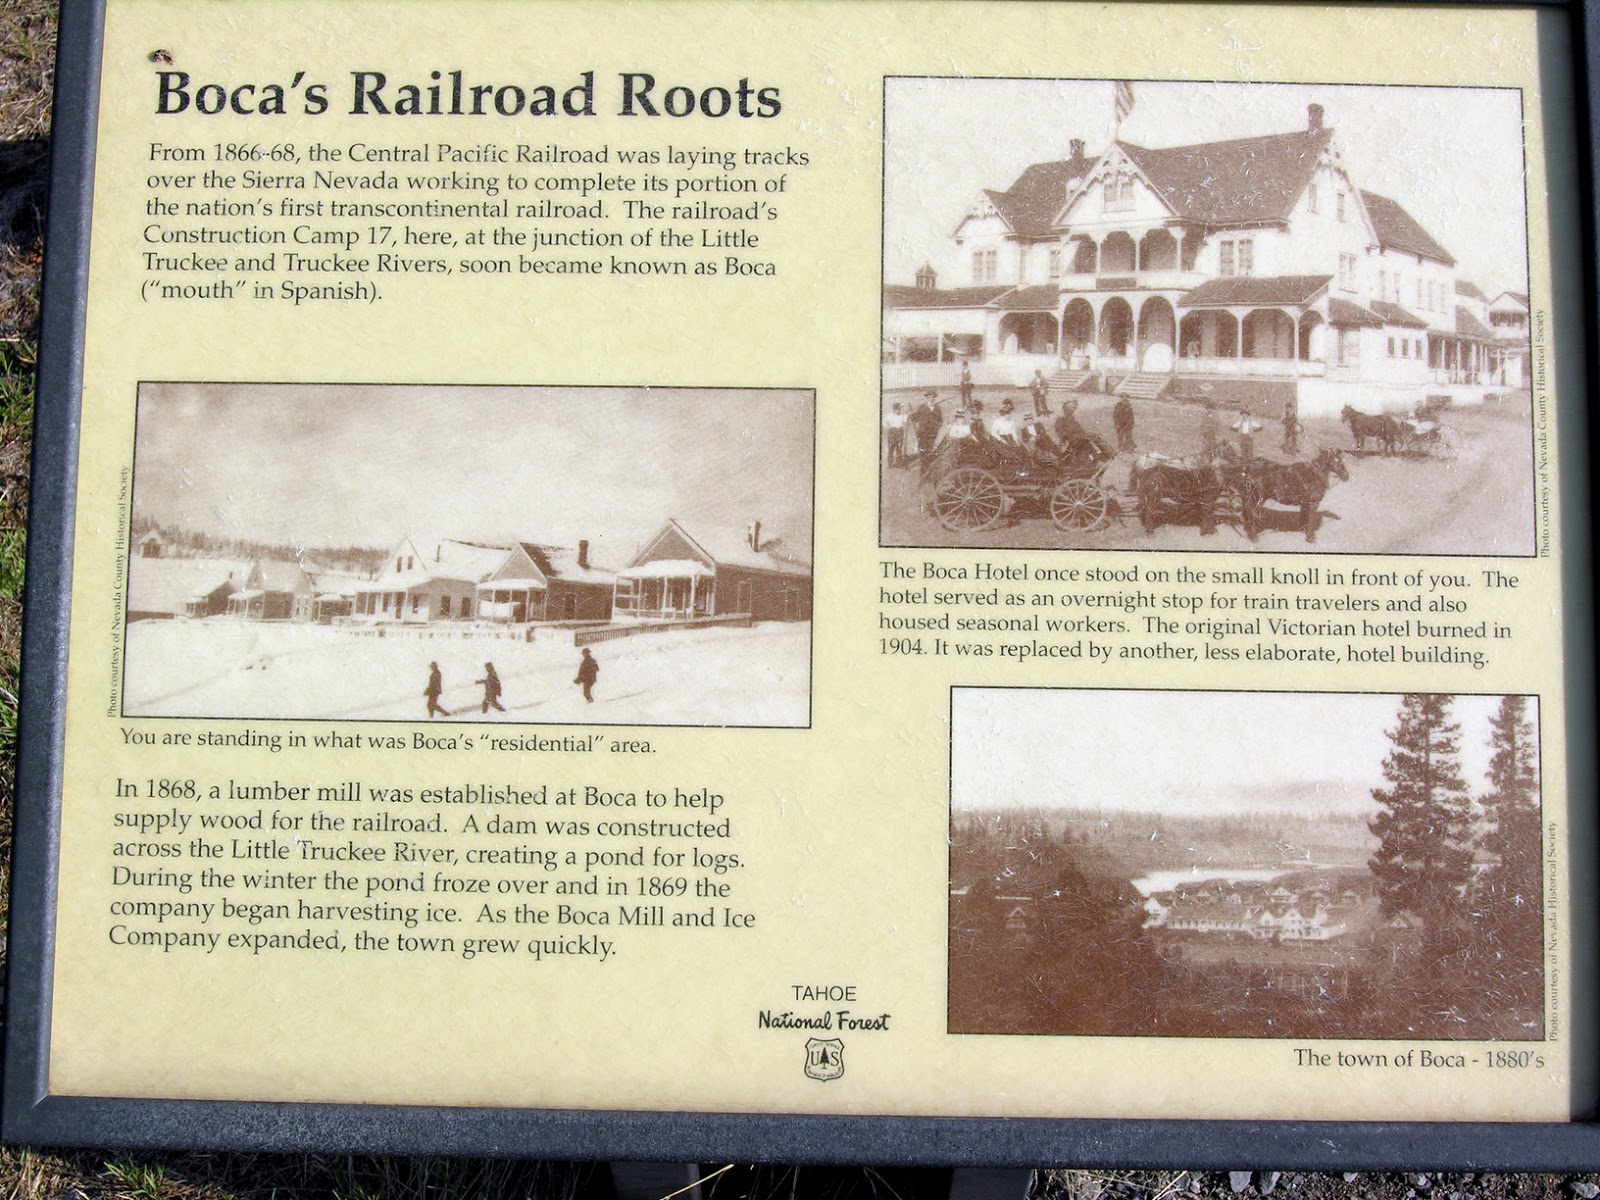 hot to make a resume%0A The first interpretive sign  Boca u    s Railroad Roots